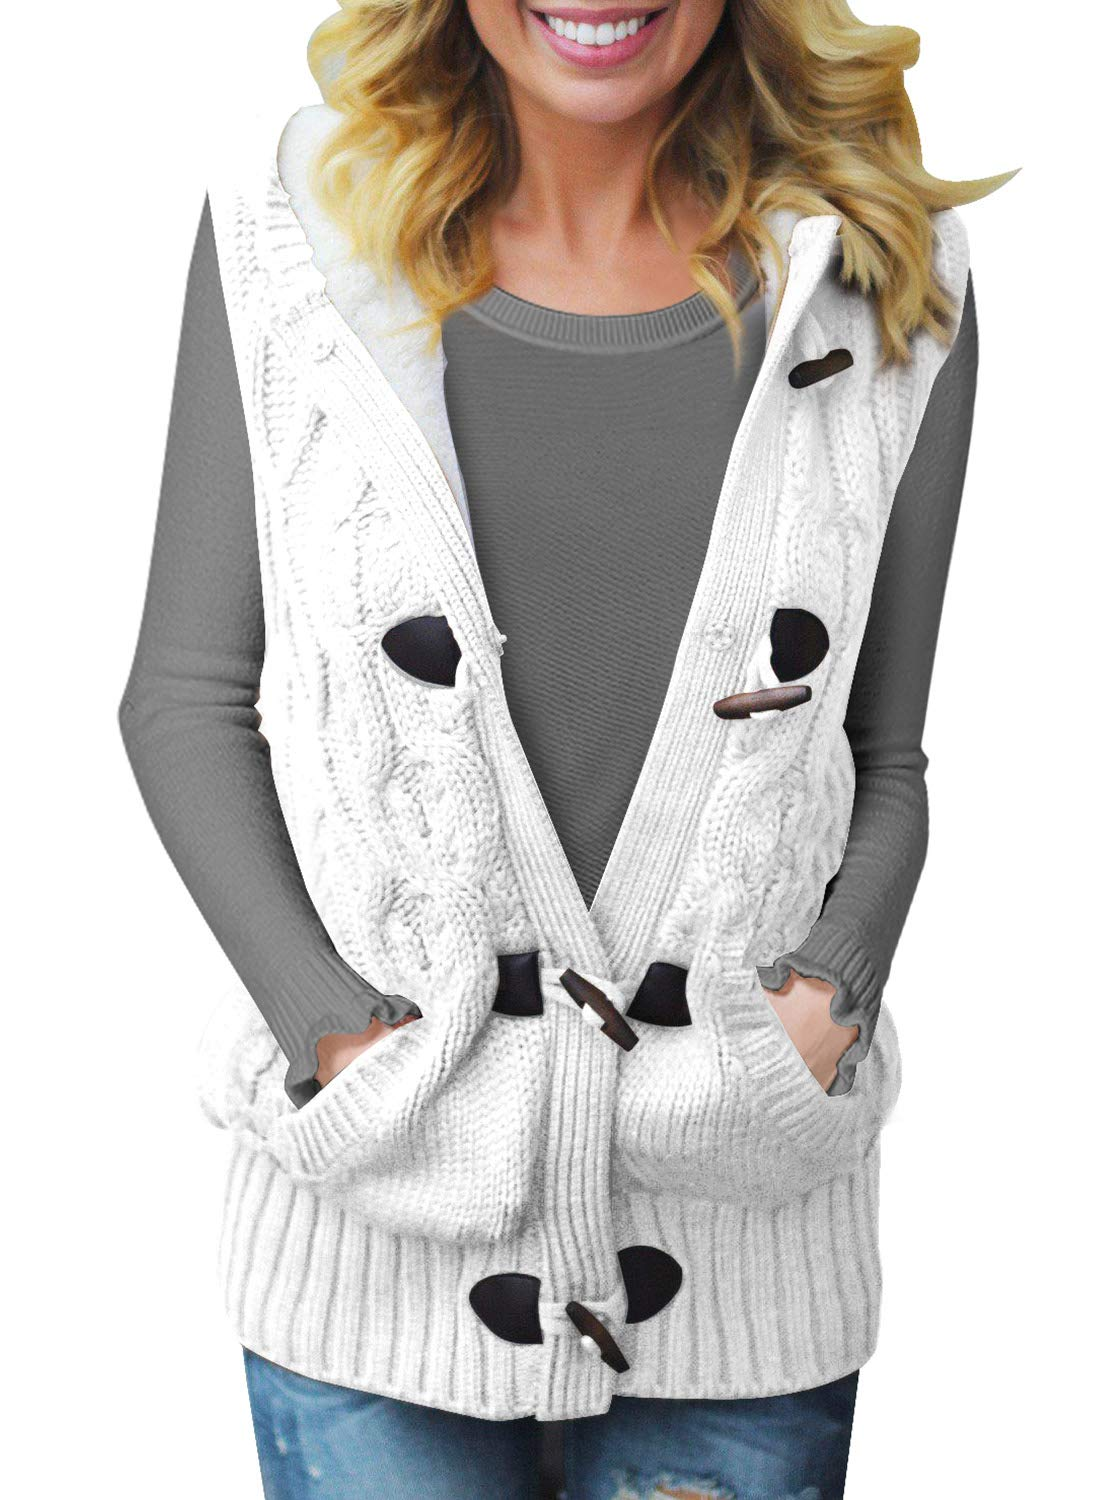 SIDEFEEL Women Hooded Sweater Vest Cable Knit Cardigan Outerwear Coat XX-Large White by SIDEFEEL